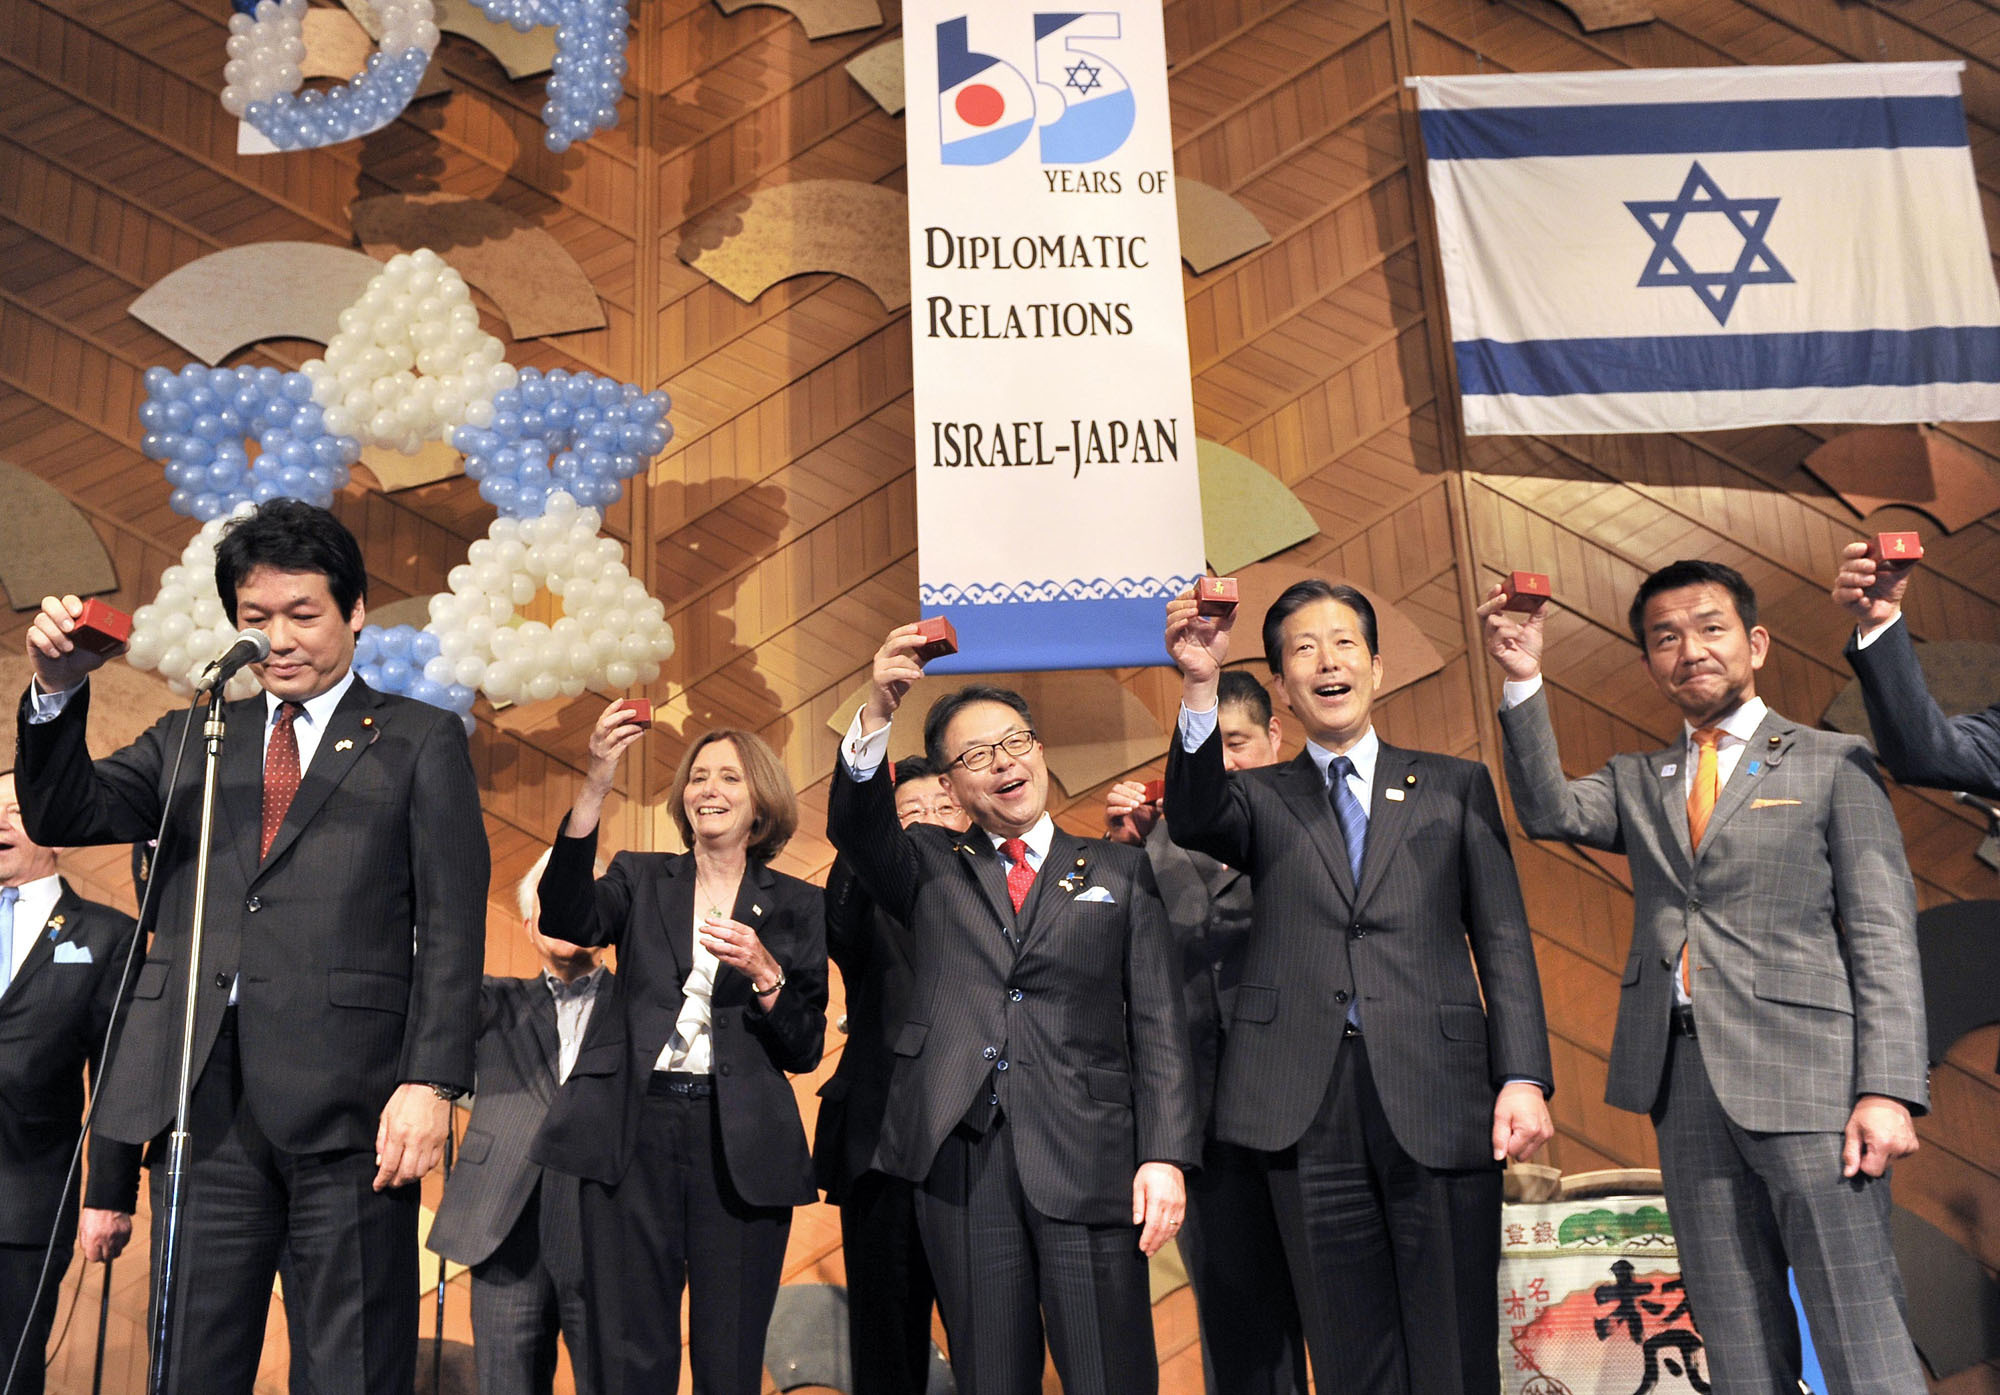 Israeli Ambassador Ruth Kahanoff (second from left) cerebrates Israel's Independence Day and the 65th anniversary of diplomatic relations between Israel and Japan with (from left) Deputy Foreign Minister Kentaro Sonoura; Economy, Trade and Industry Minister Hiroshige Seko; Komeito President Natsuo Yamaguchi; and Parliamentary Vice Foreign Minister Kiyoshi Odawara during a reception at Hotel New Otani in Tokyo on May 11. |  YOSHIAKI MIURA